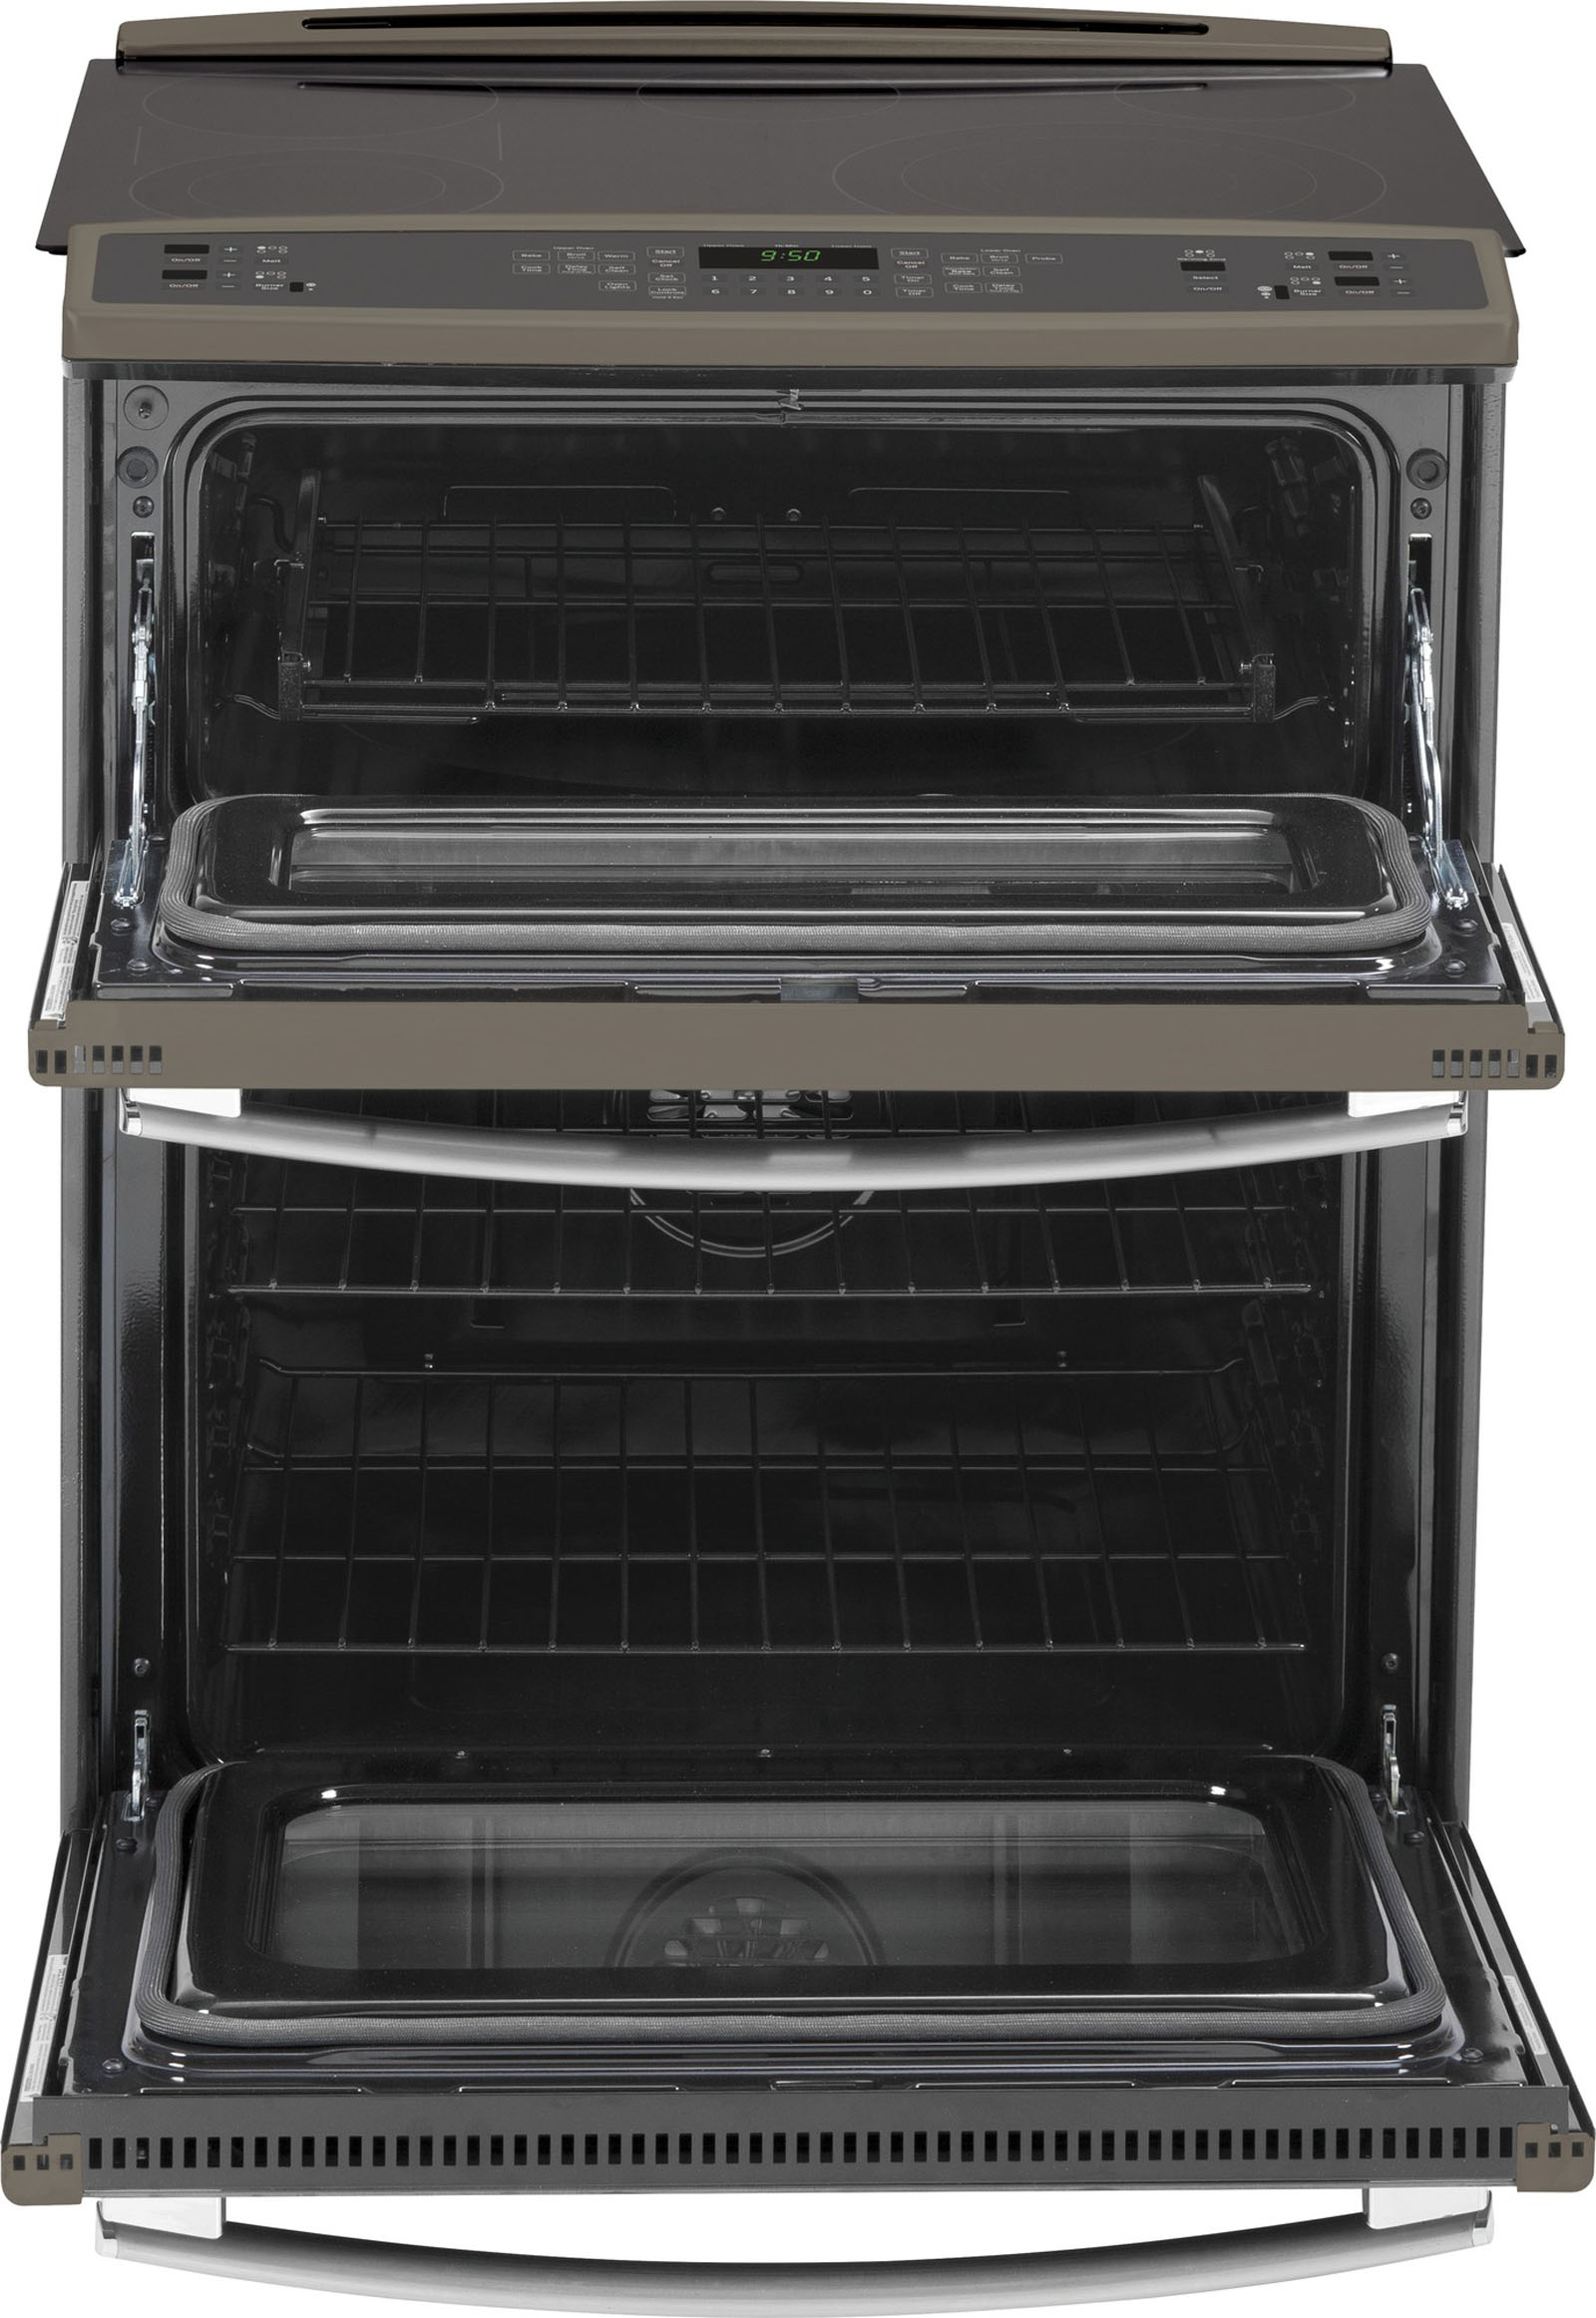 GE Profile PS950EFES 4.4 cu. ft. Slide-In Electric Range w/ Convection Double Oven - Slate